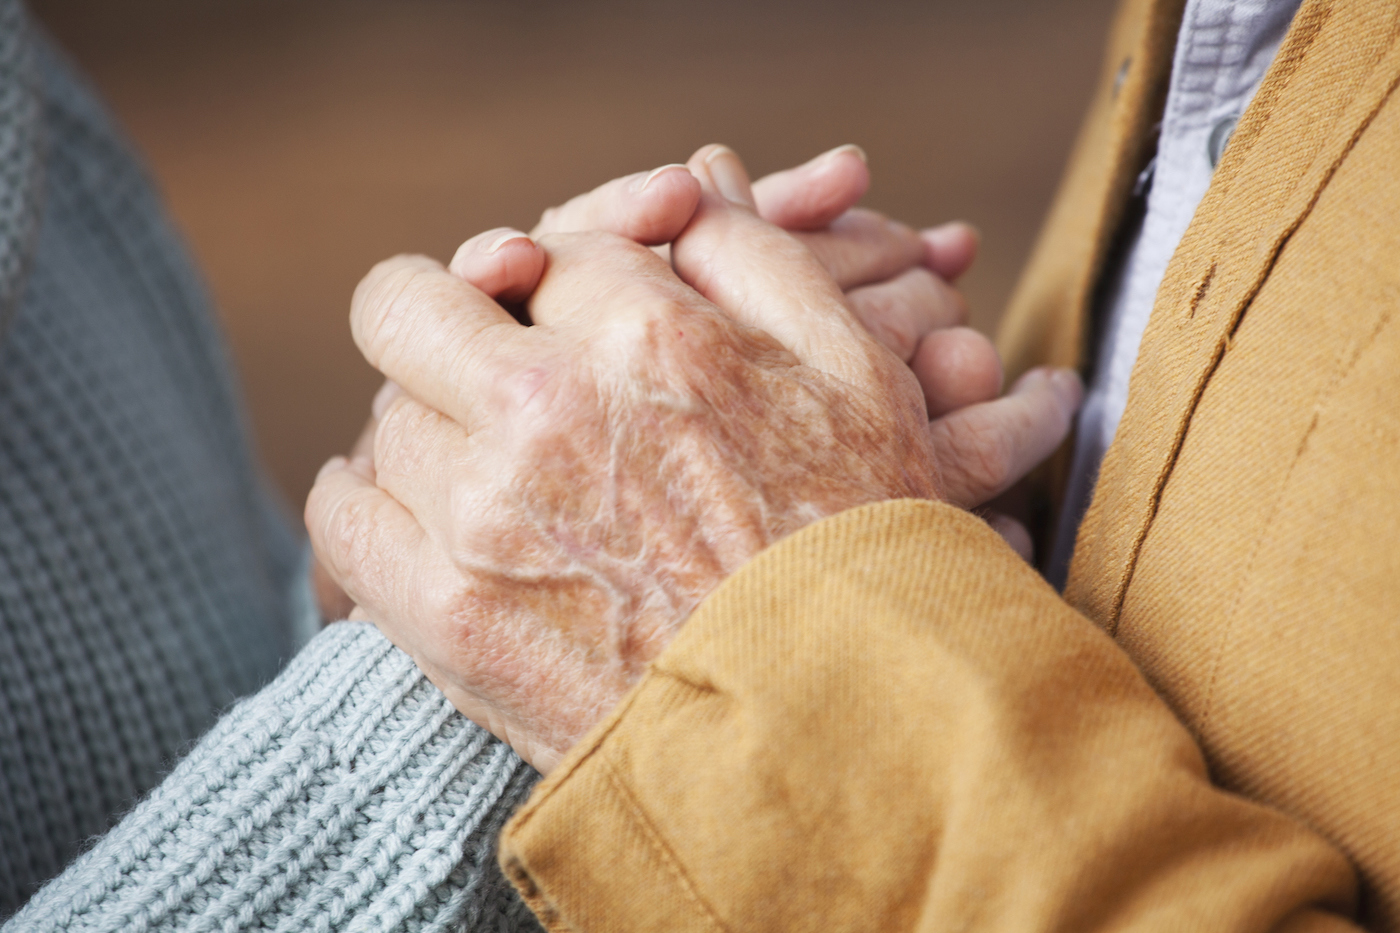 Together for 85 years, the world's oldest couple shares their tips for making a relationship last